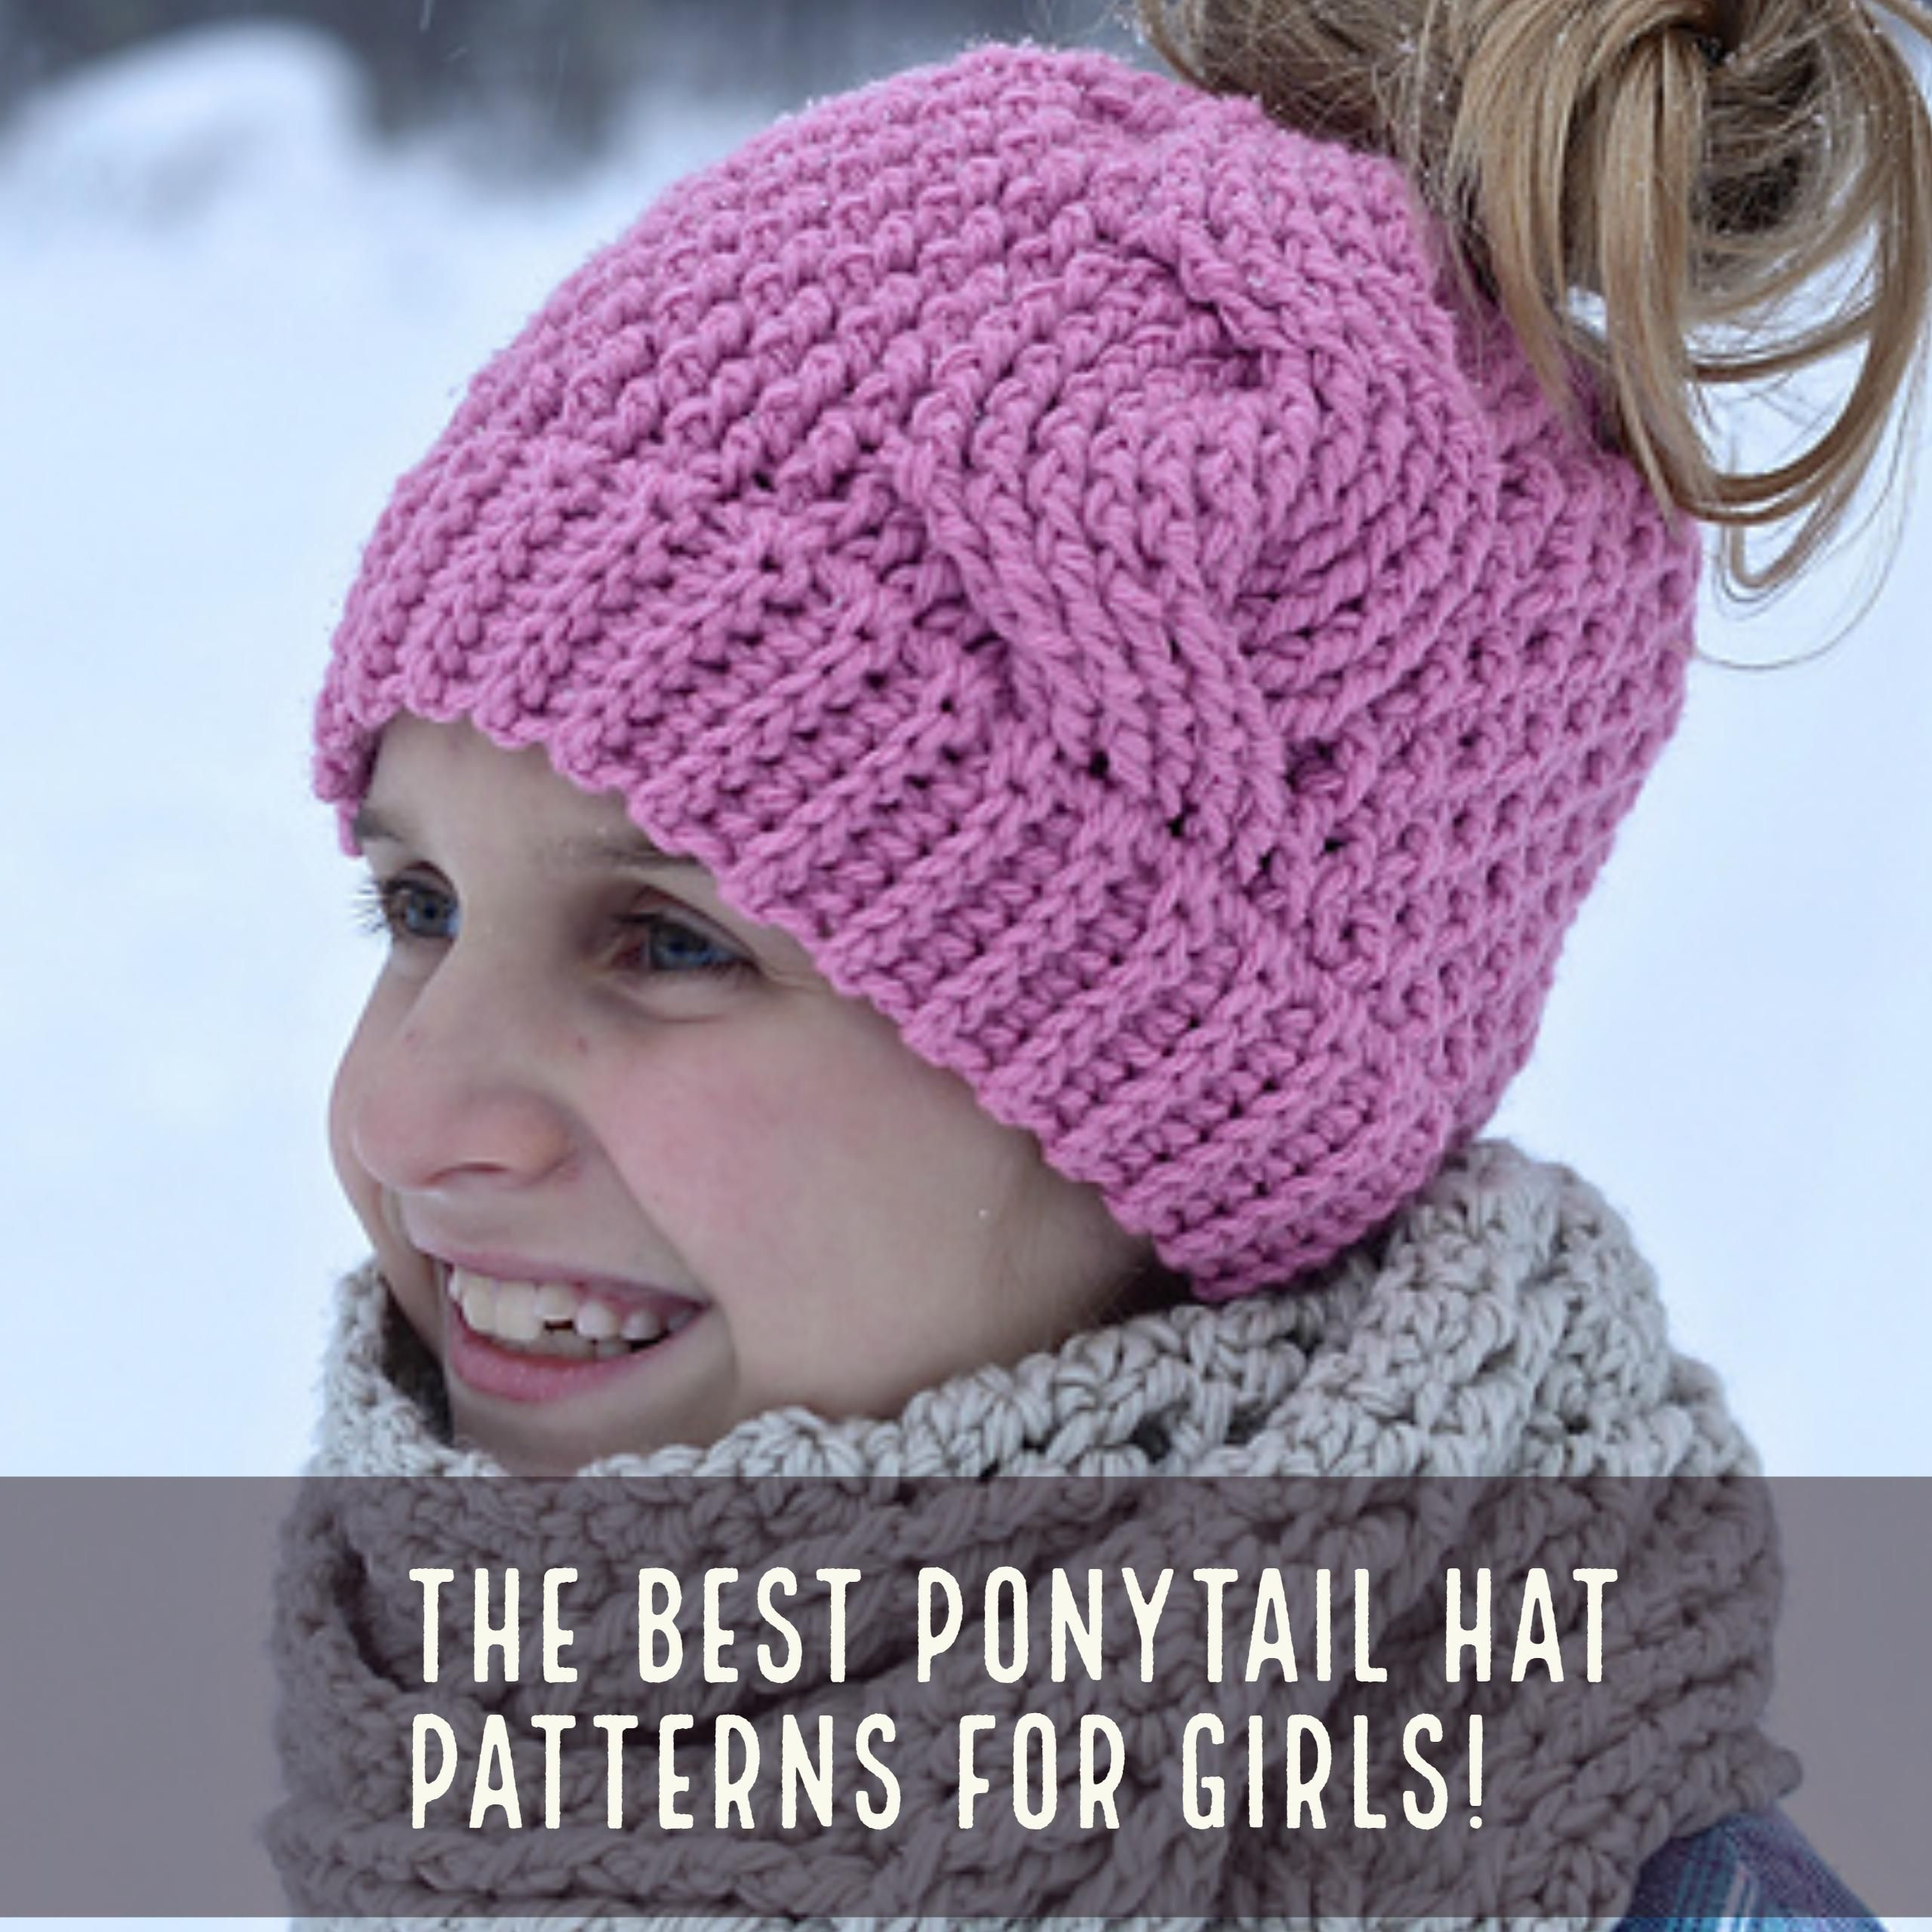 The Best Ponytail Hat Patterns (aka Messy Bun Beanies) for Little ...